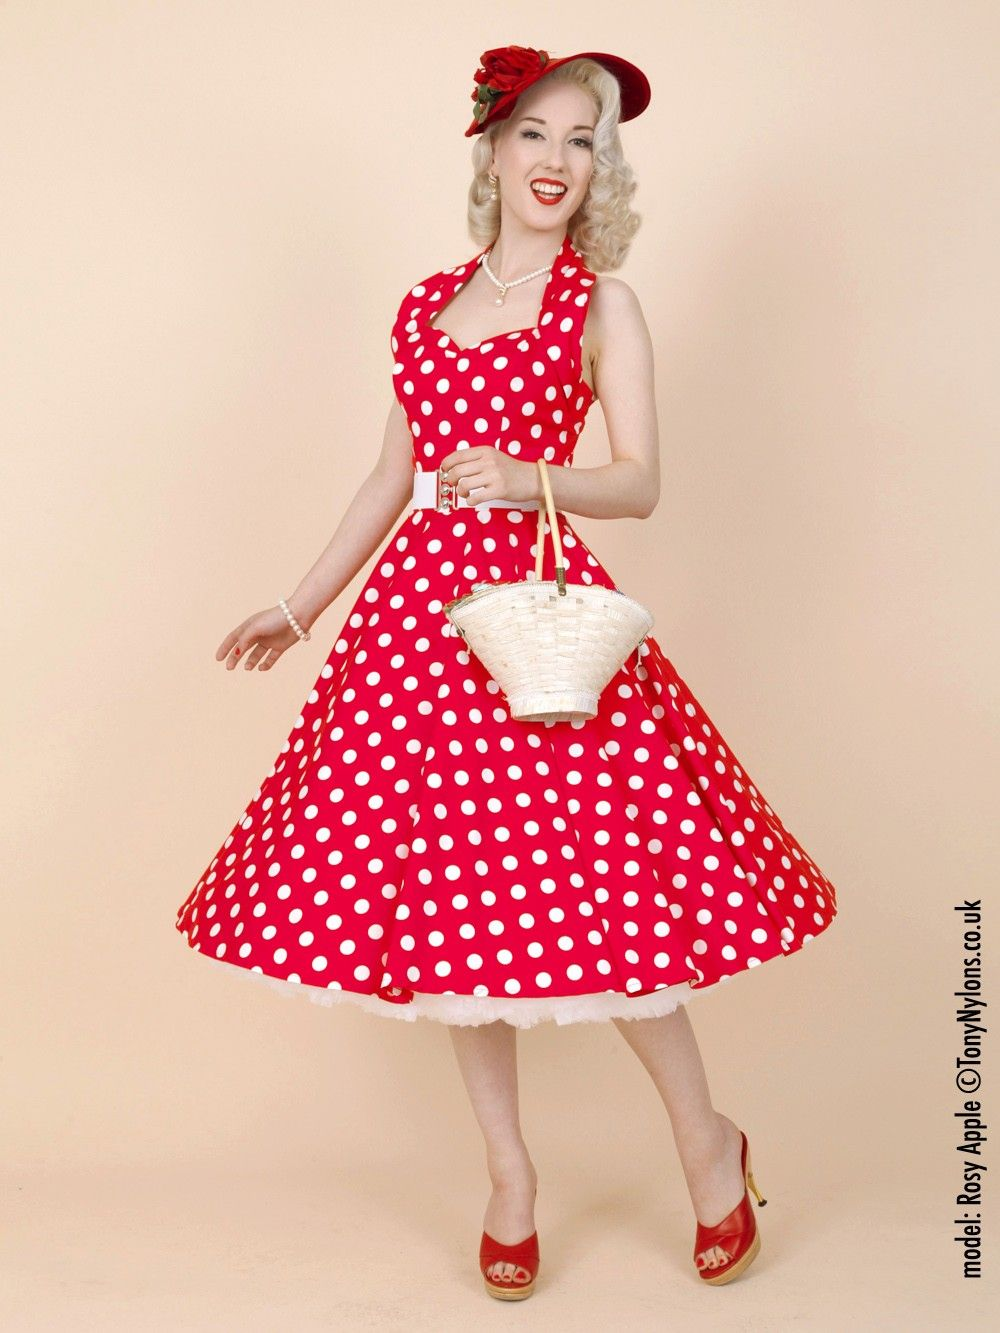 50s-1950s-Vivien-of-Holloway-Best-Vintage-Reproduction-Halterneck-Circle- Dress-Red-White-Polkadot-Rockabilly-Swing-Pinup